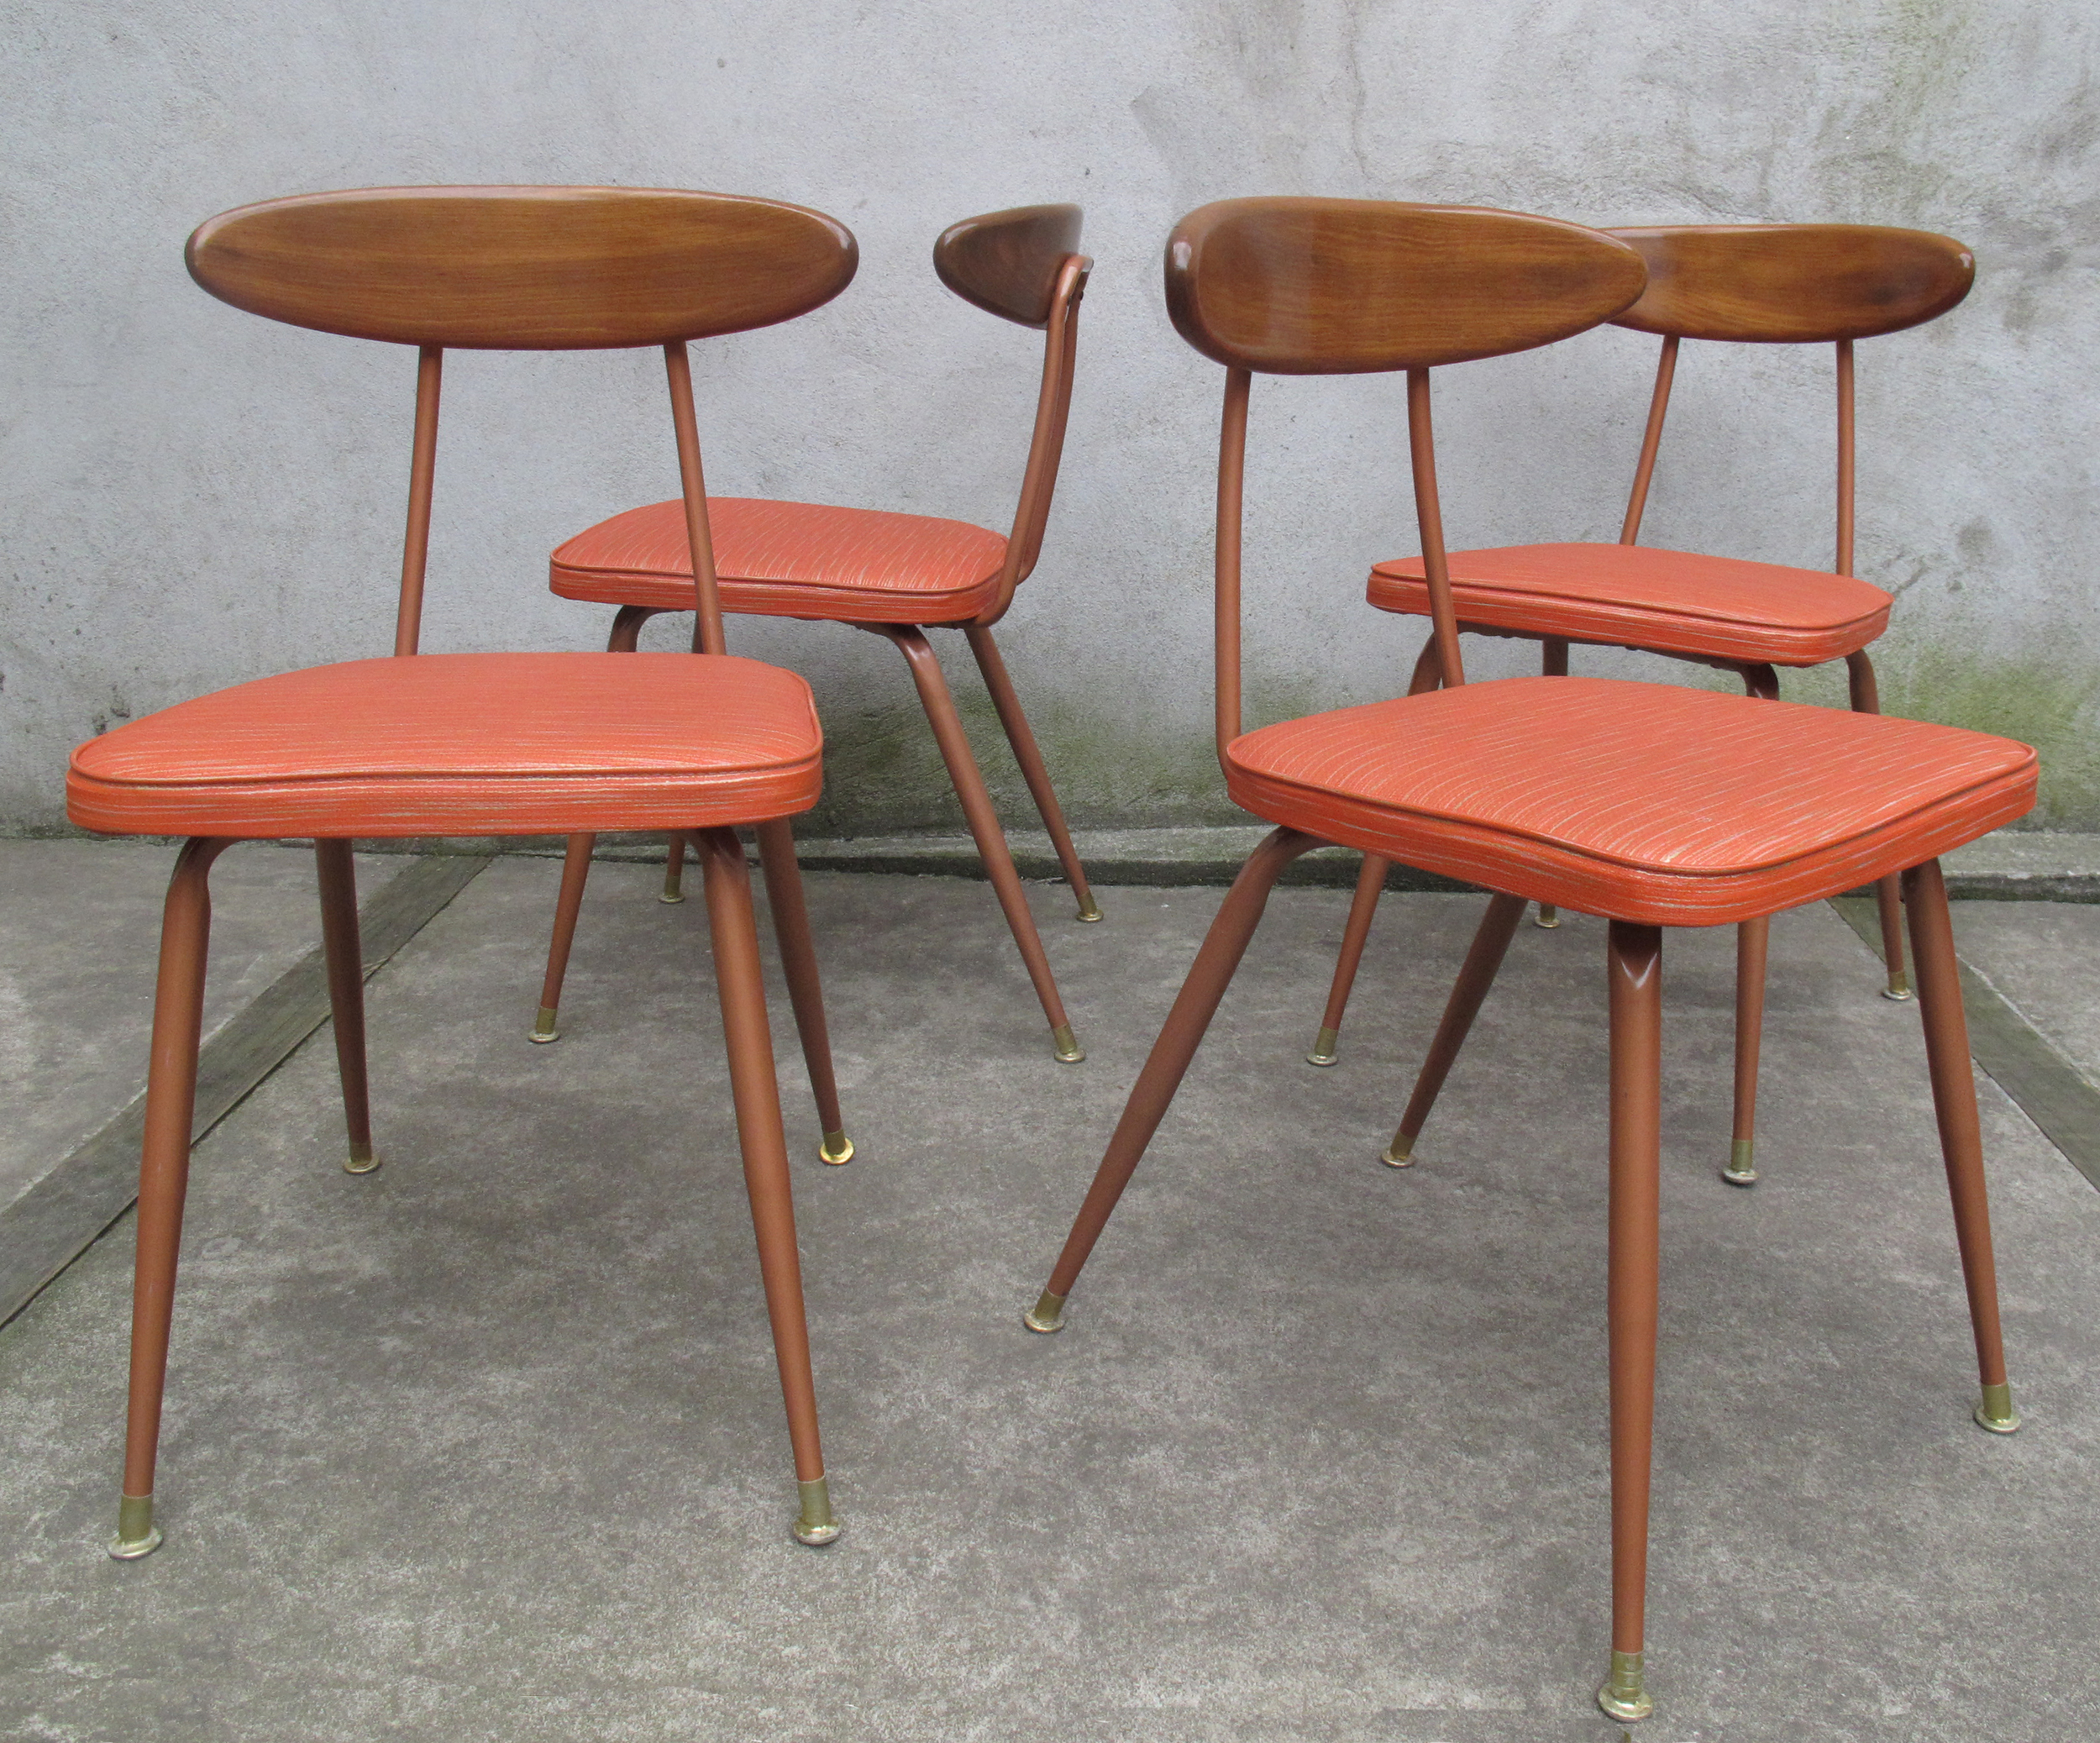 MID CENTURY WOOD AND ALUMINUM DINING CHAIRS BY VIKO (BAUMRITTER)